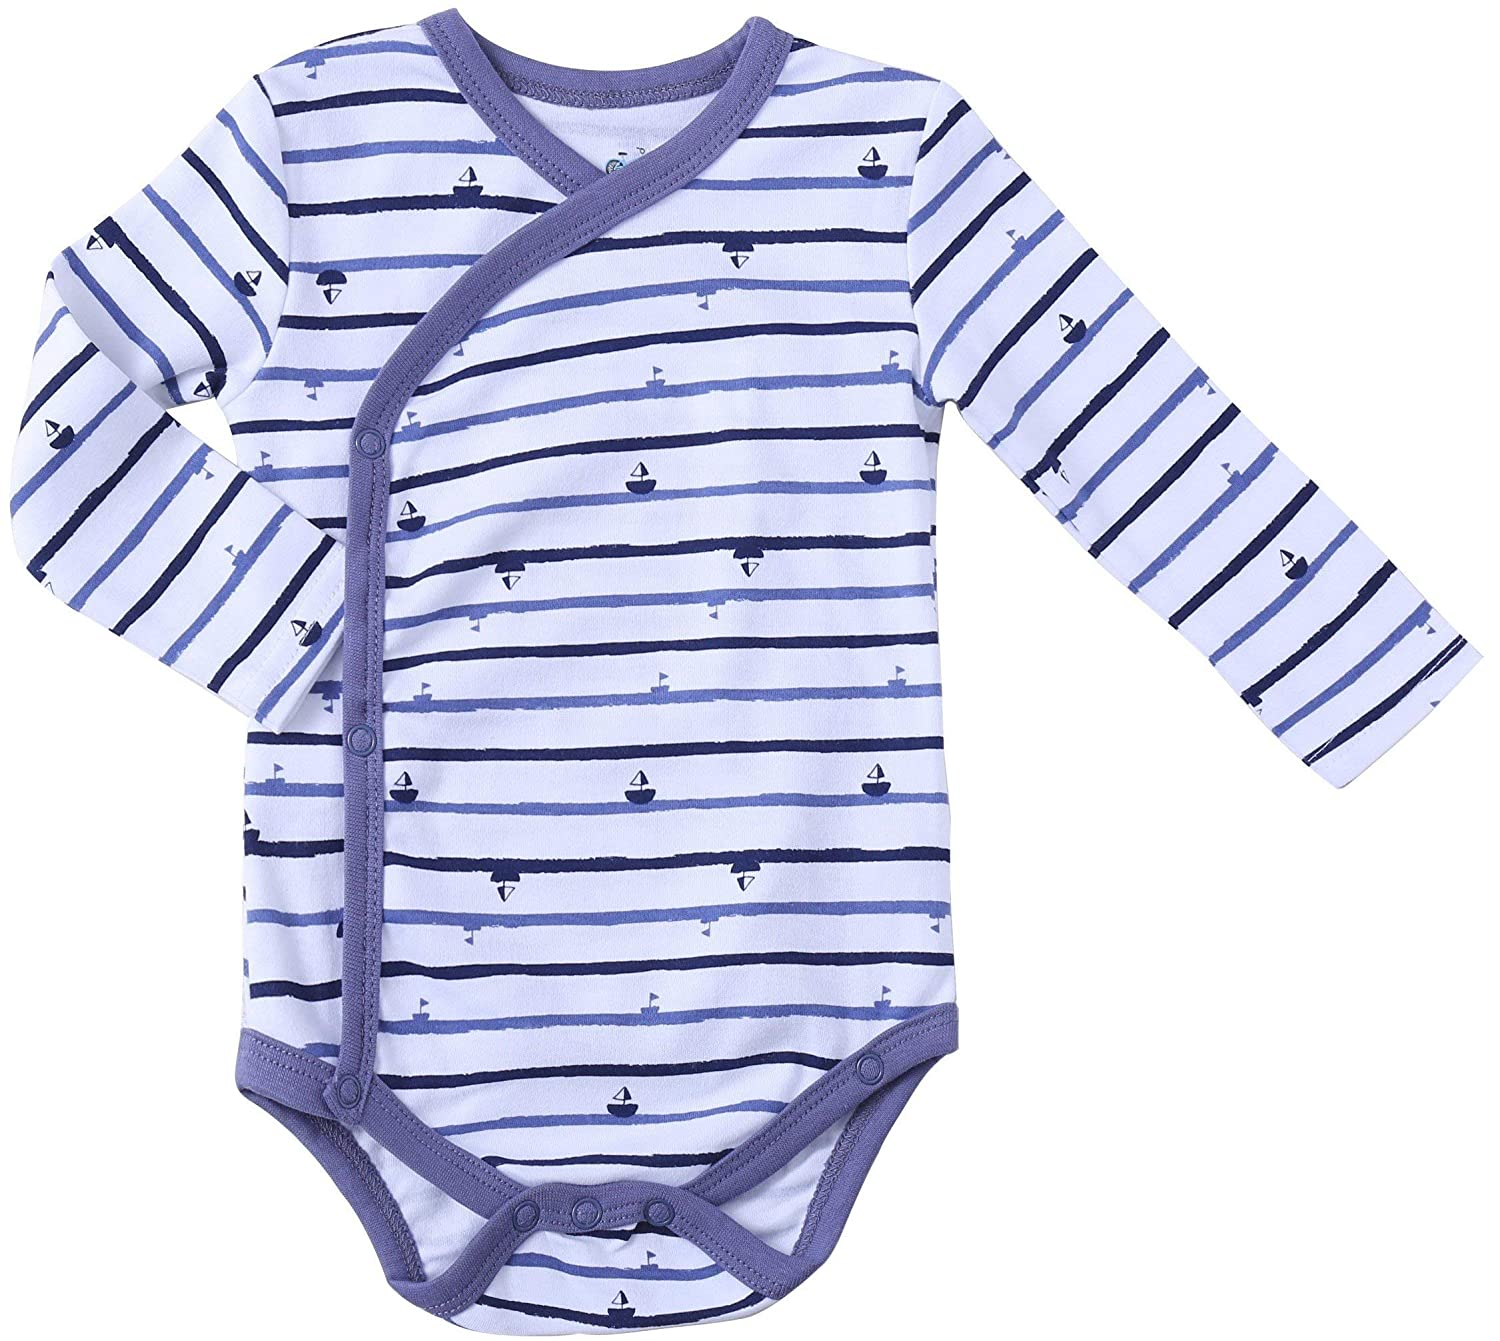 Side Snap Onesie Infant Bundle. Baby Boys 3-Pack Long-Sleeve Kimono Bodysuit Set